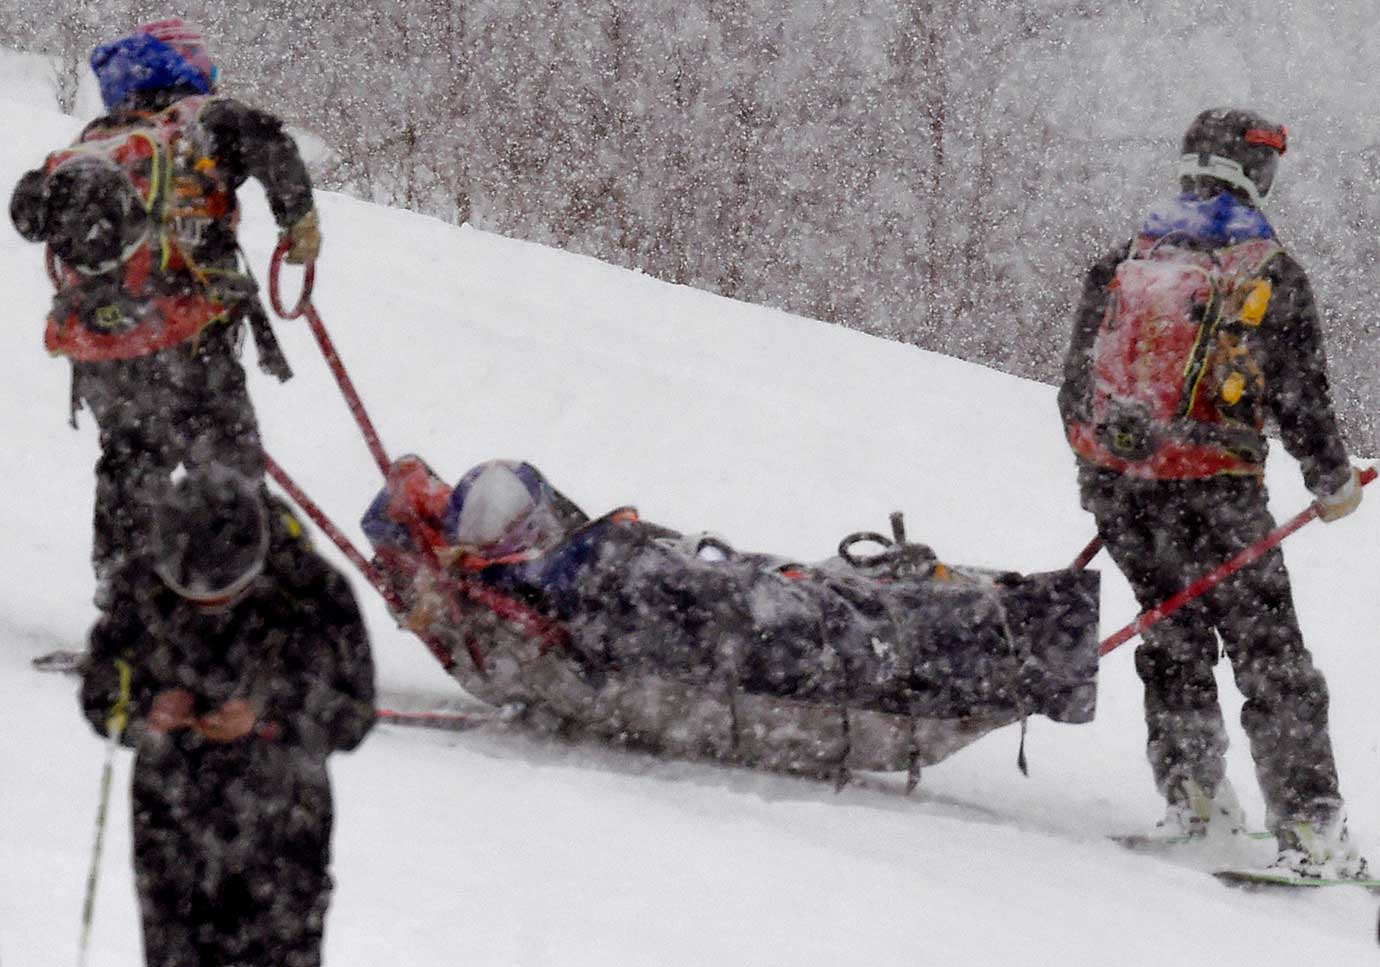 Lindsey Vonn is carried out on a rescue sled after falling during the World Cup Super G.